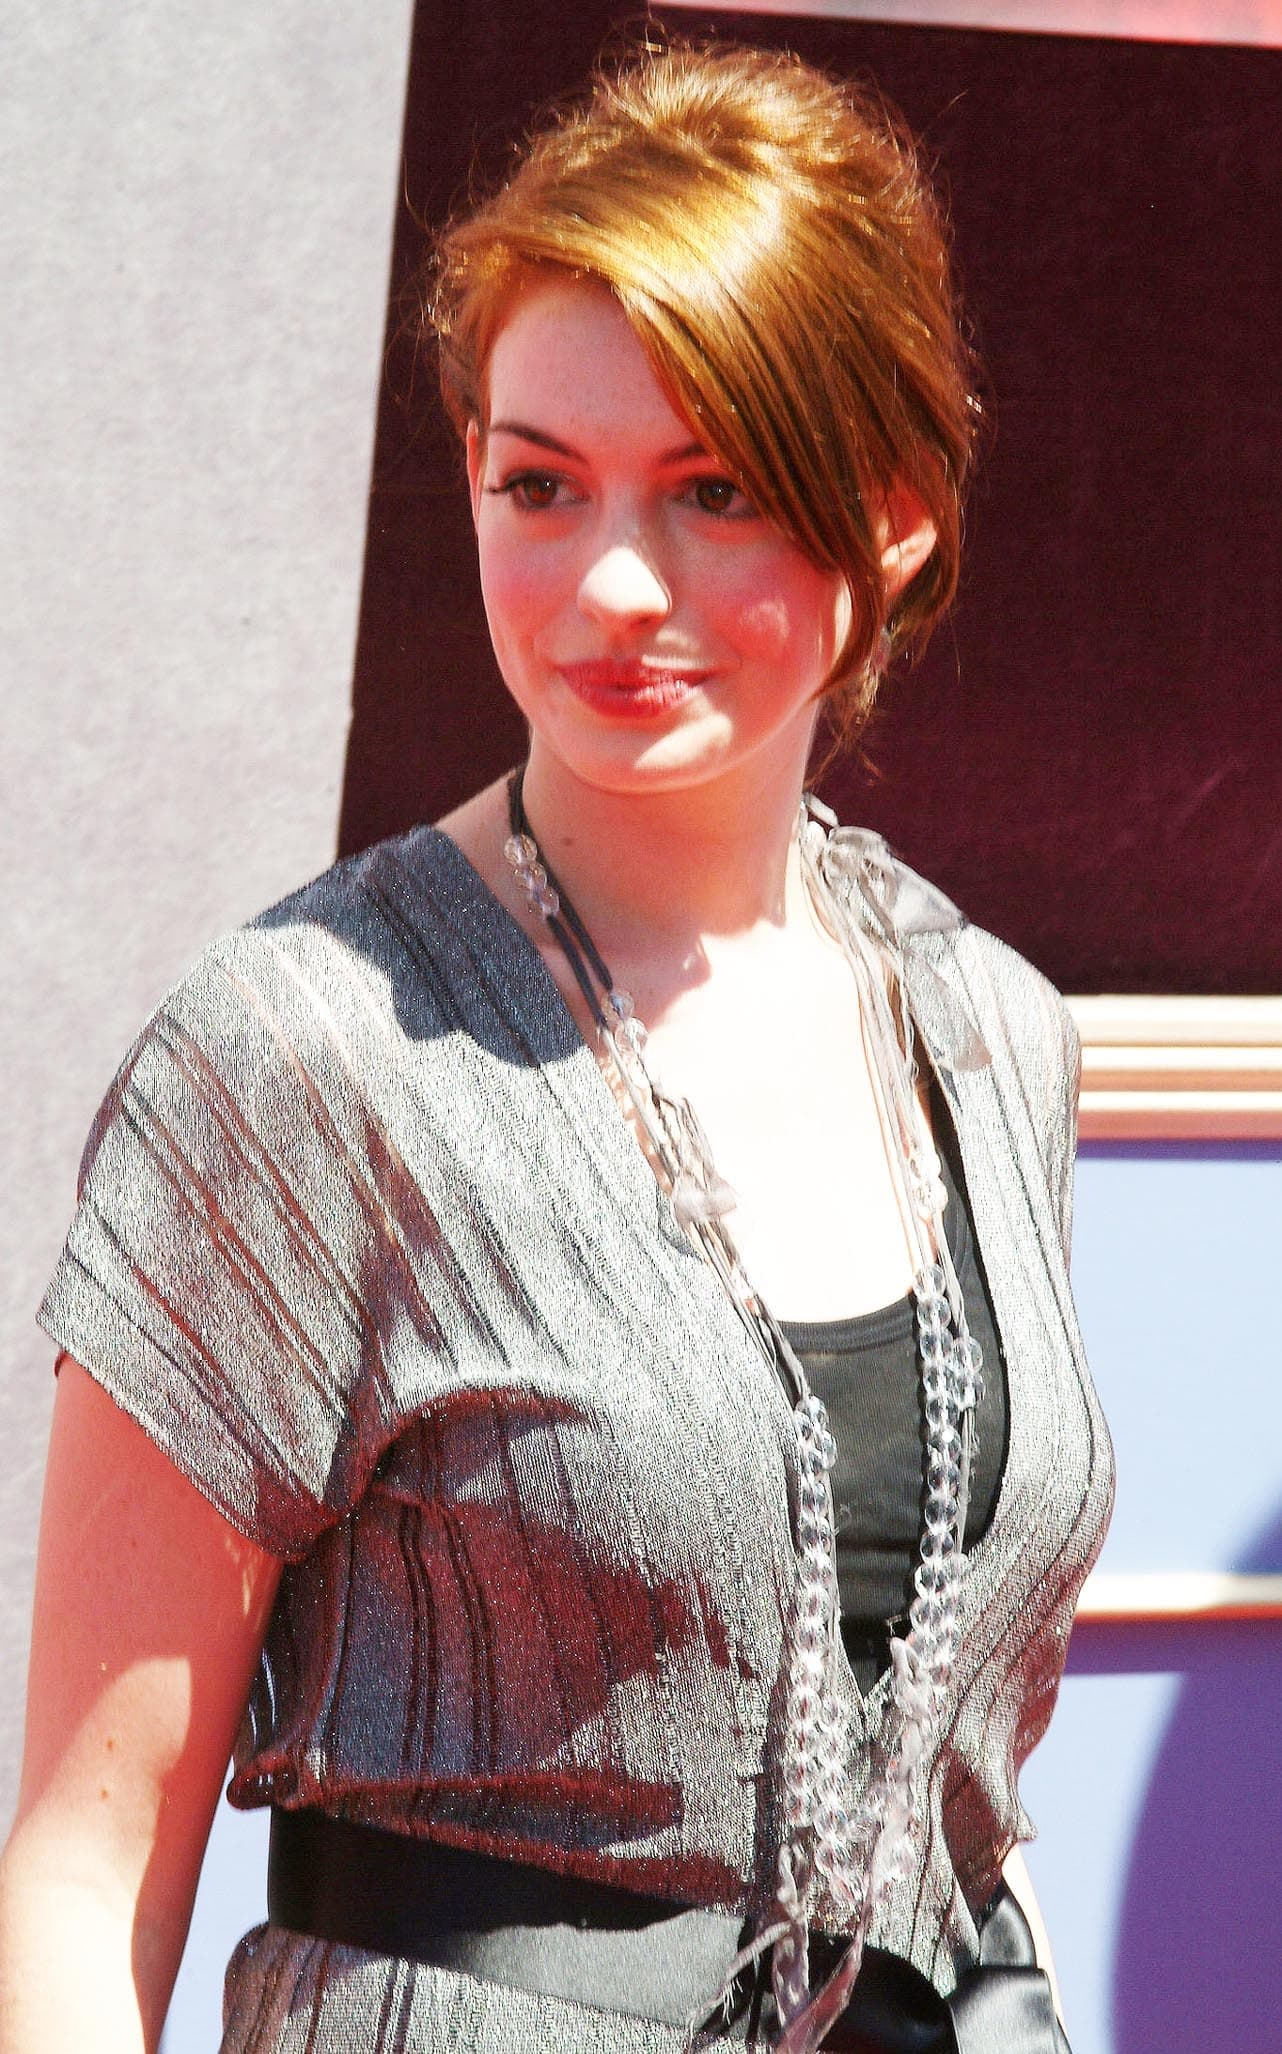 21-year-old actress Anne Hathaway at the Disney premiere The Princess Diaries 2: The Royal Engagement